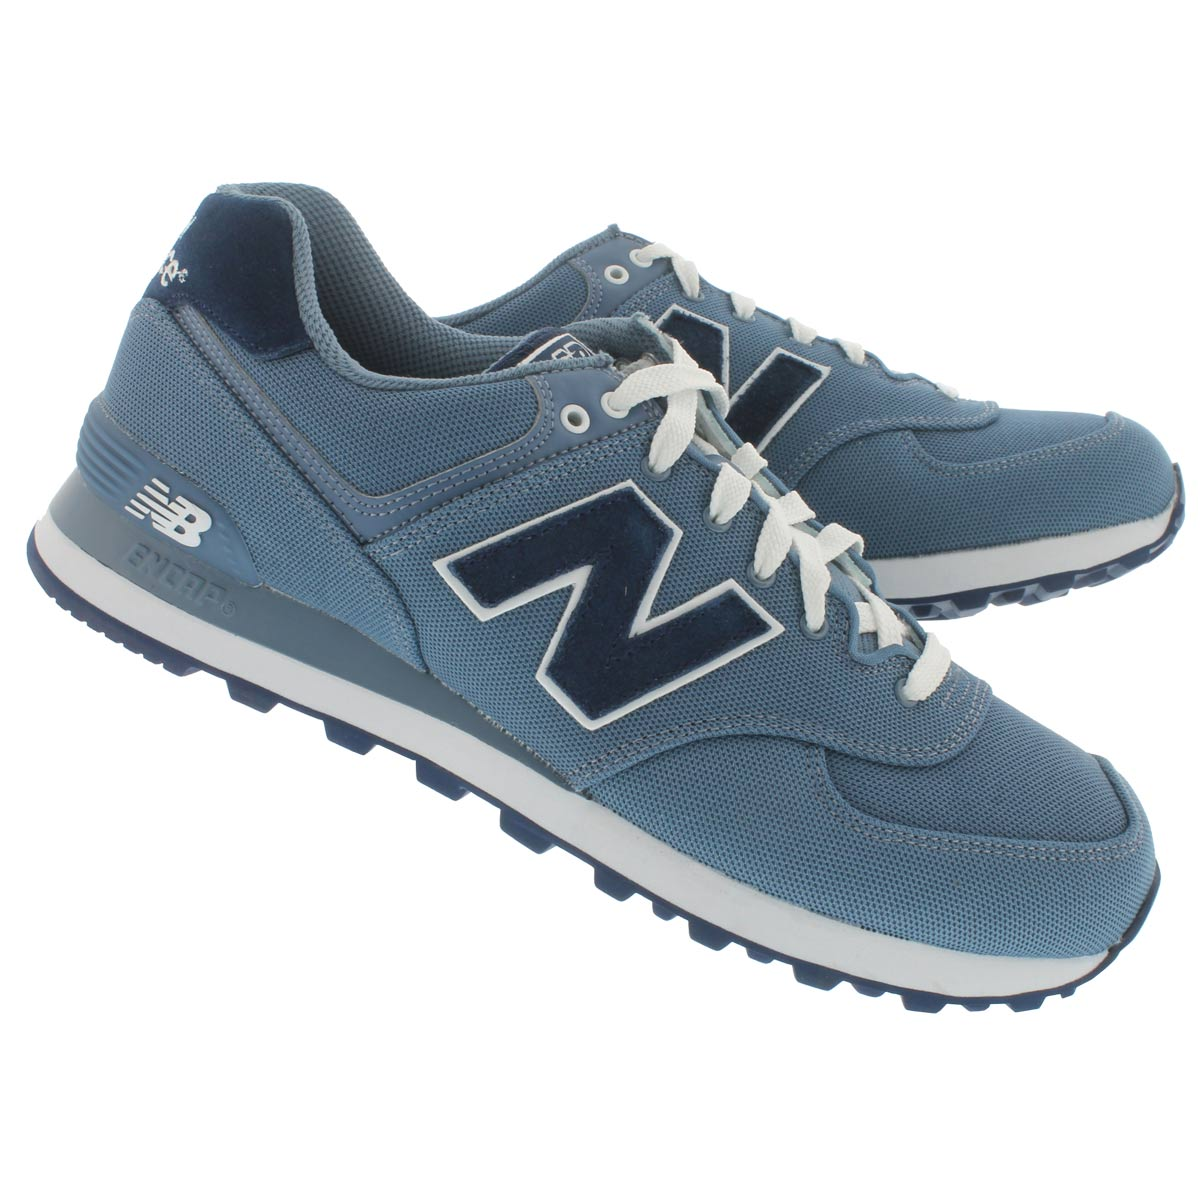 Mns 574 chambray lace up sneaker